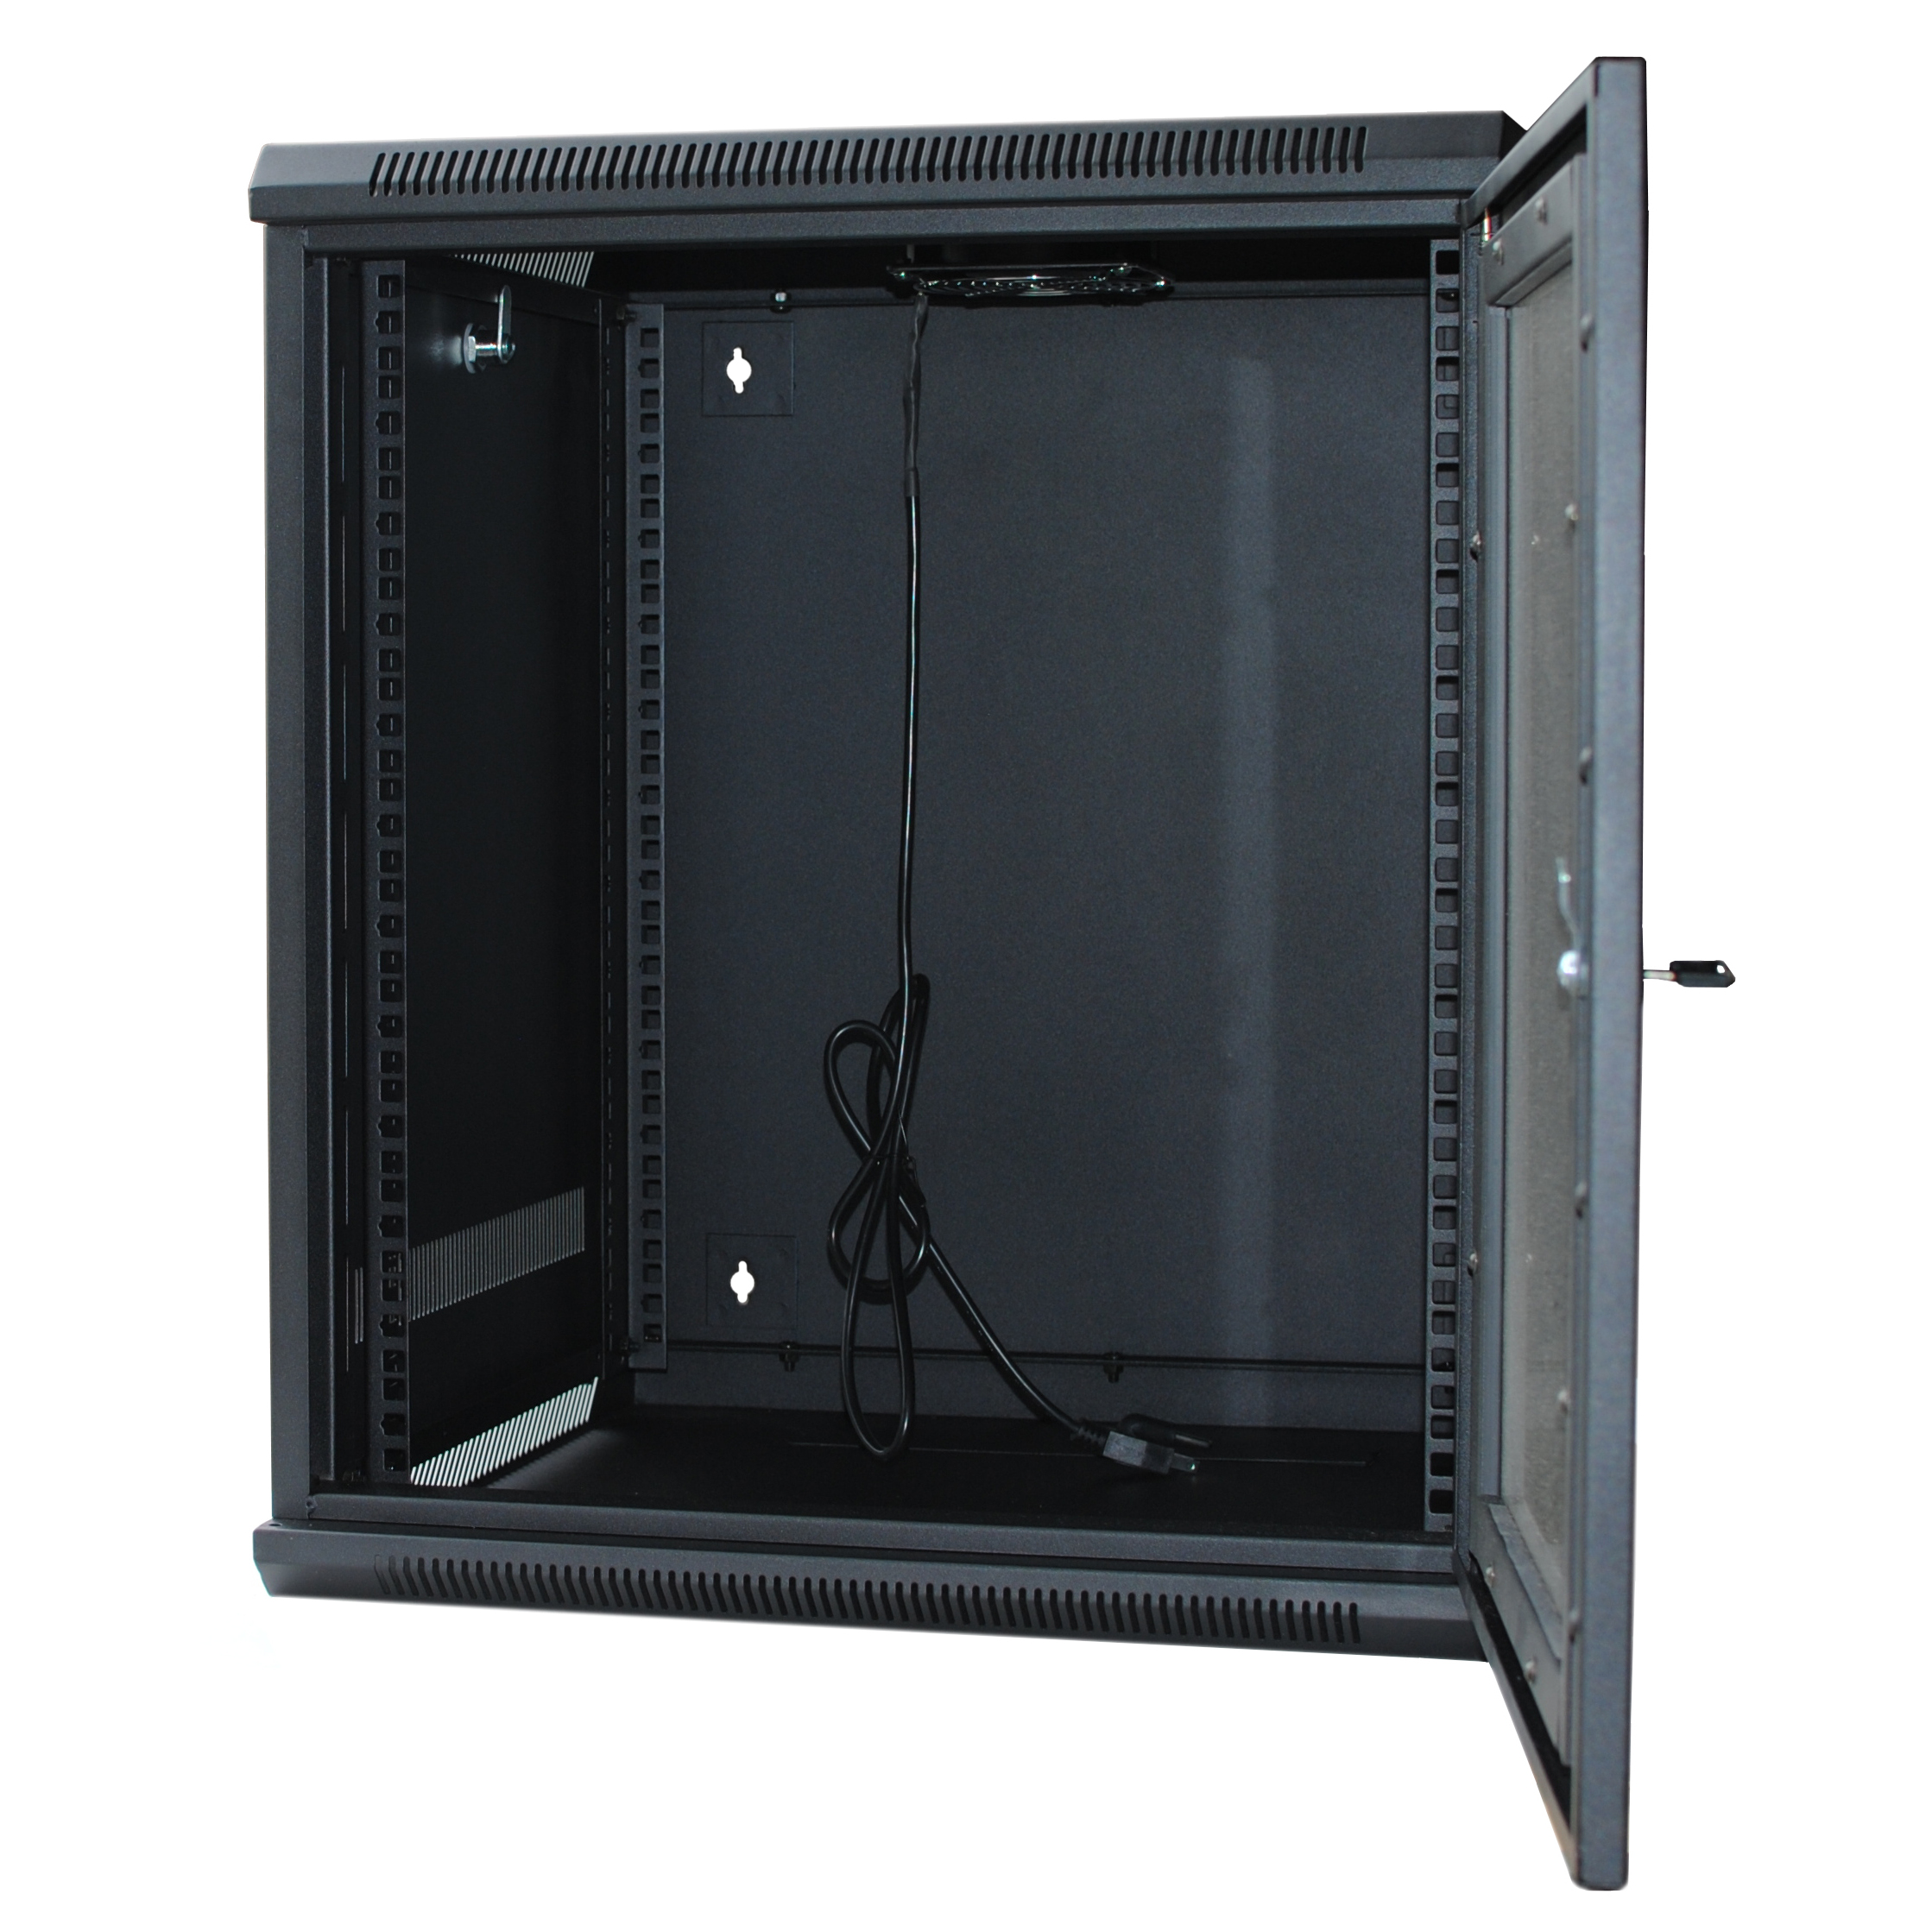 "120284BK - 9U Wall Mount Cabinet Rack w/Locking Glass Door & Cooling Fan - 24"" Deep (Assembly Required)"